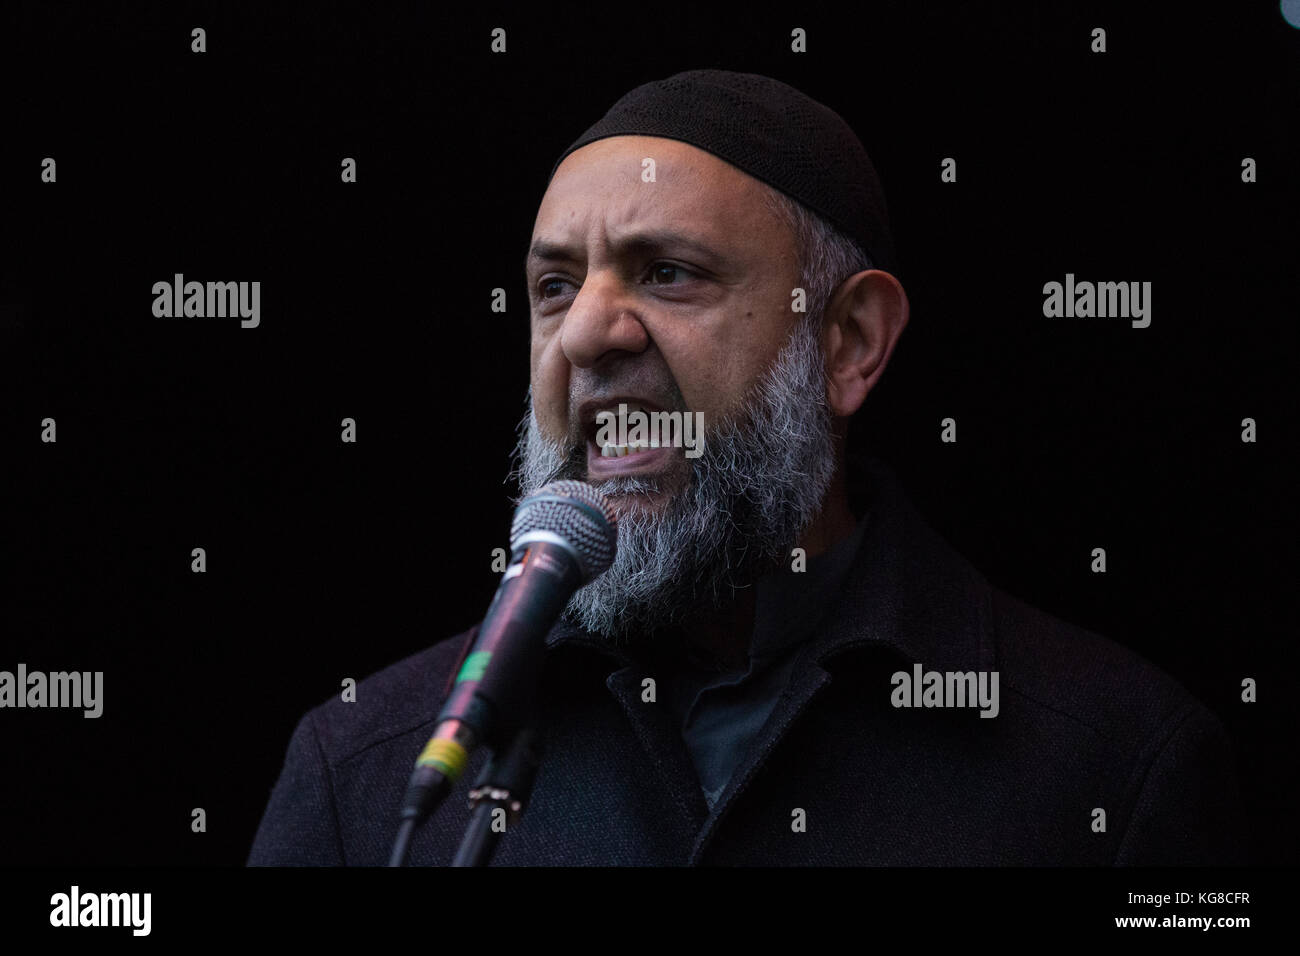 London, UK. 4th November, 2017. Ismail Patel, Chair of Friends of al-Aqsa, addresses campaigners for Palestine who - Stock Image